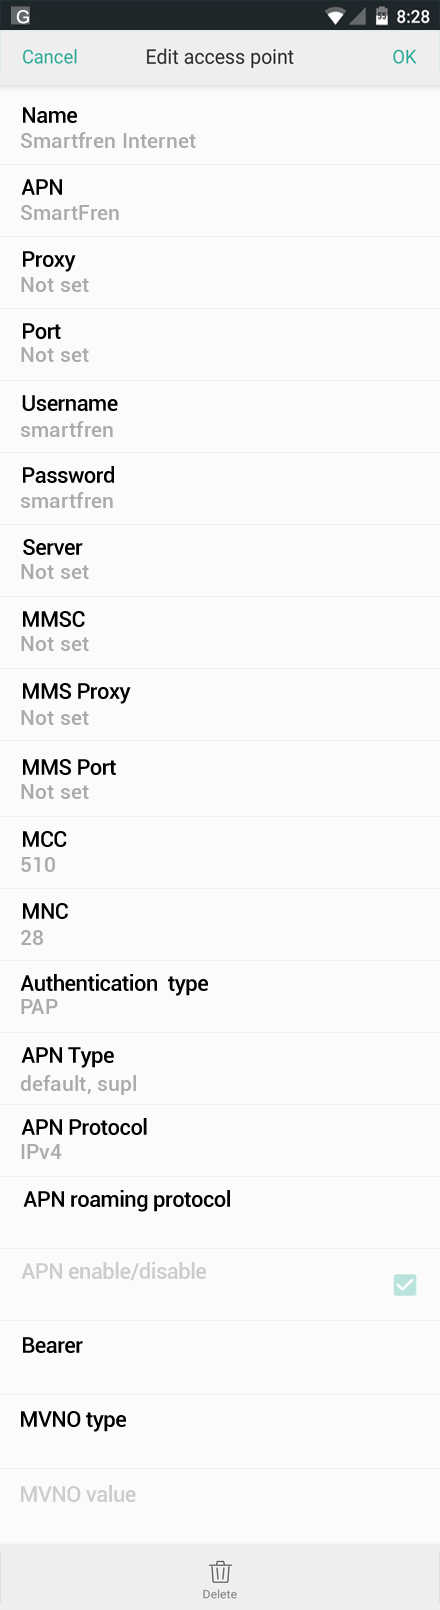 Smartfren Internet APN settings for Oppo screenshot